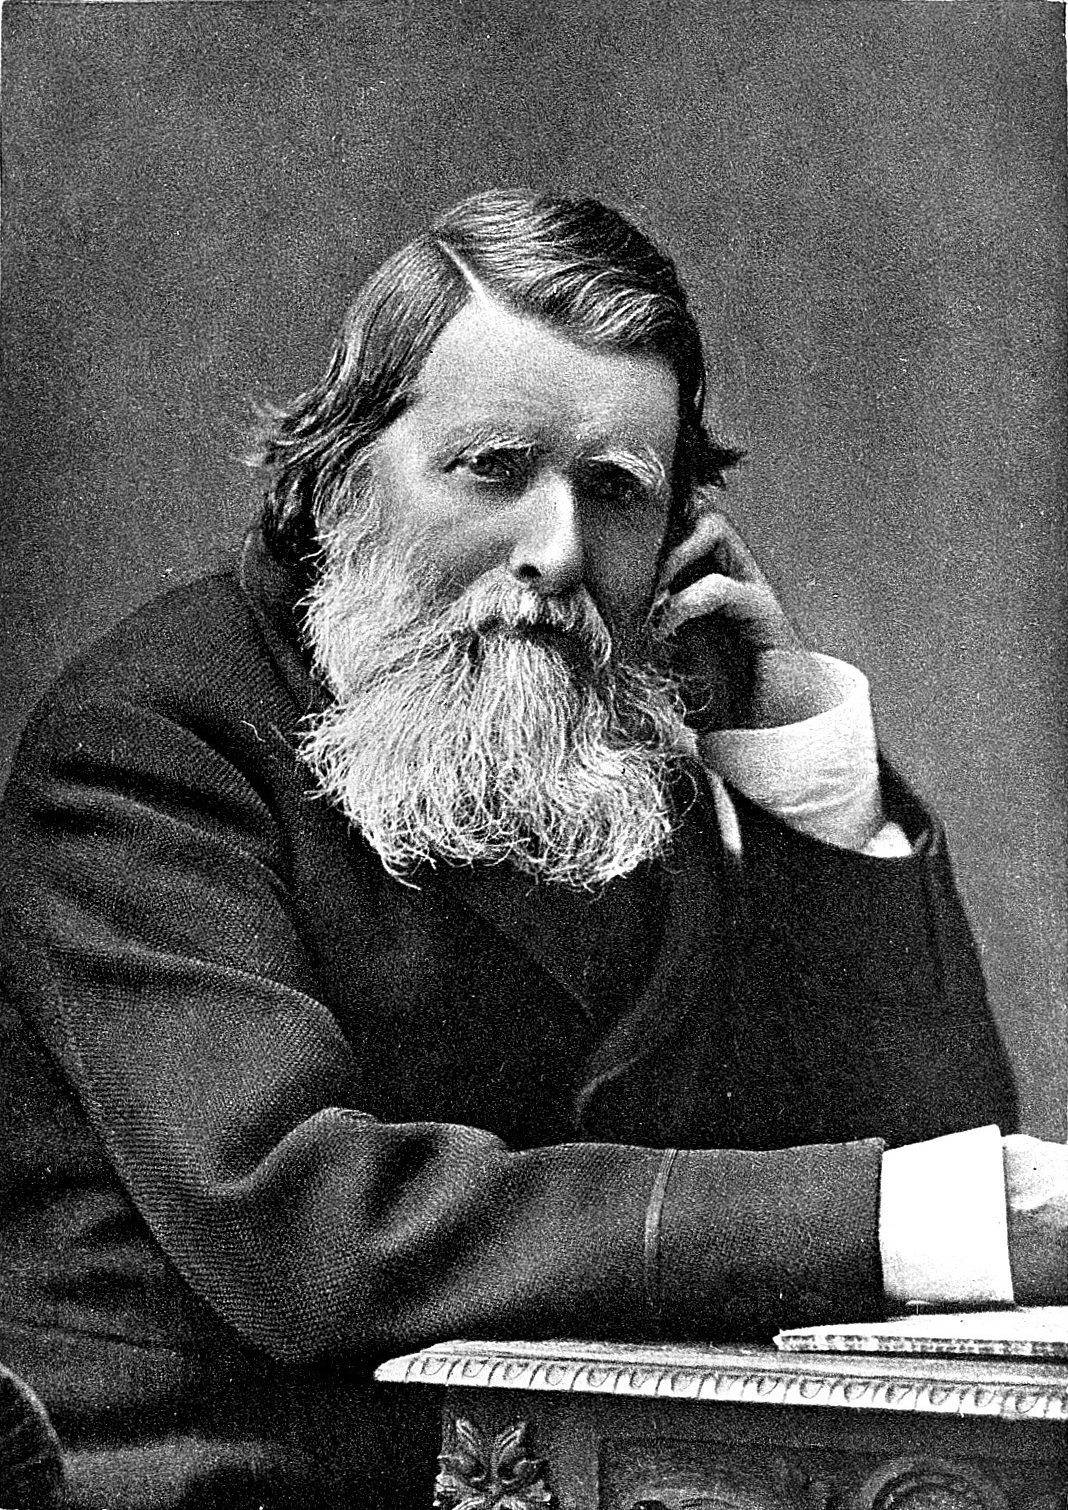 john ruskin work The english critic and social theorist john ruskin (1819-1900) more than any other man shaped the esthetic values and tastes of victorian england his writings combine enormous sensitivity and human compassion with a burning zeal for moral value john ruskin's principal insight was that art is an .